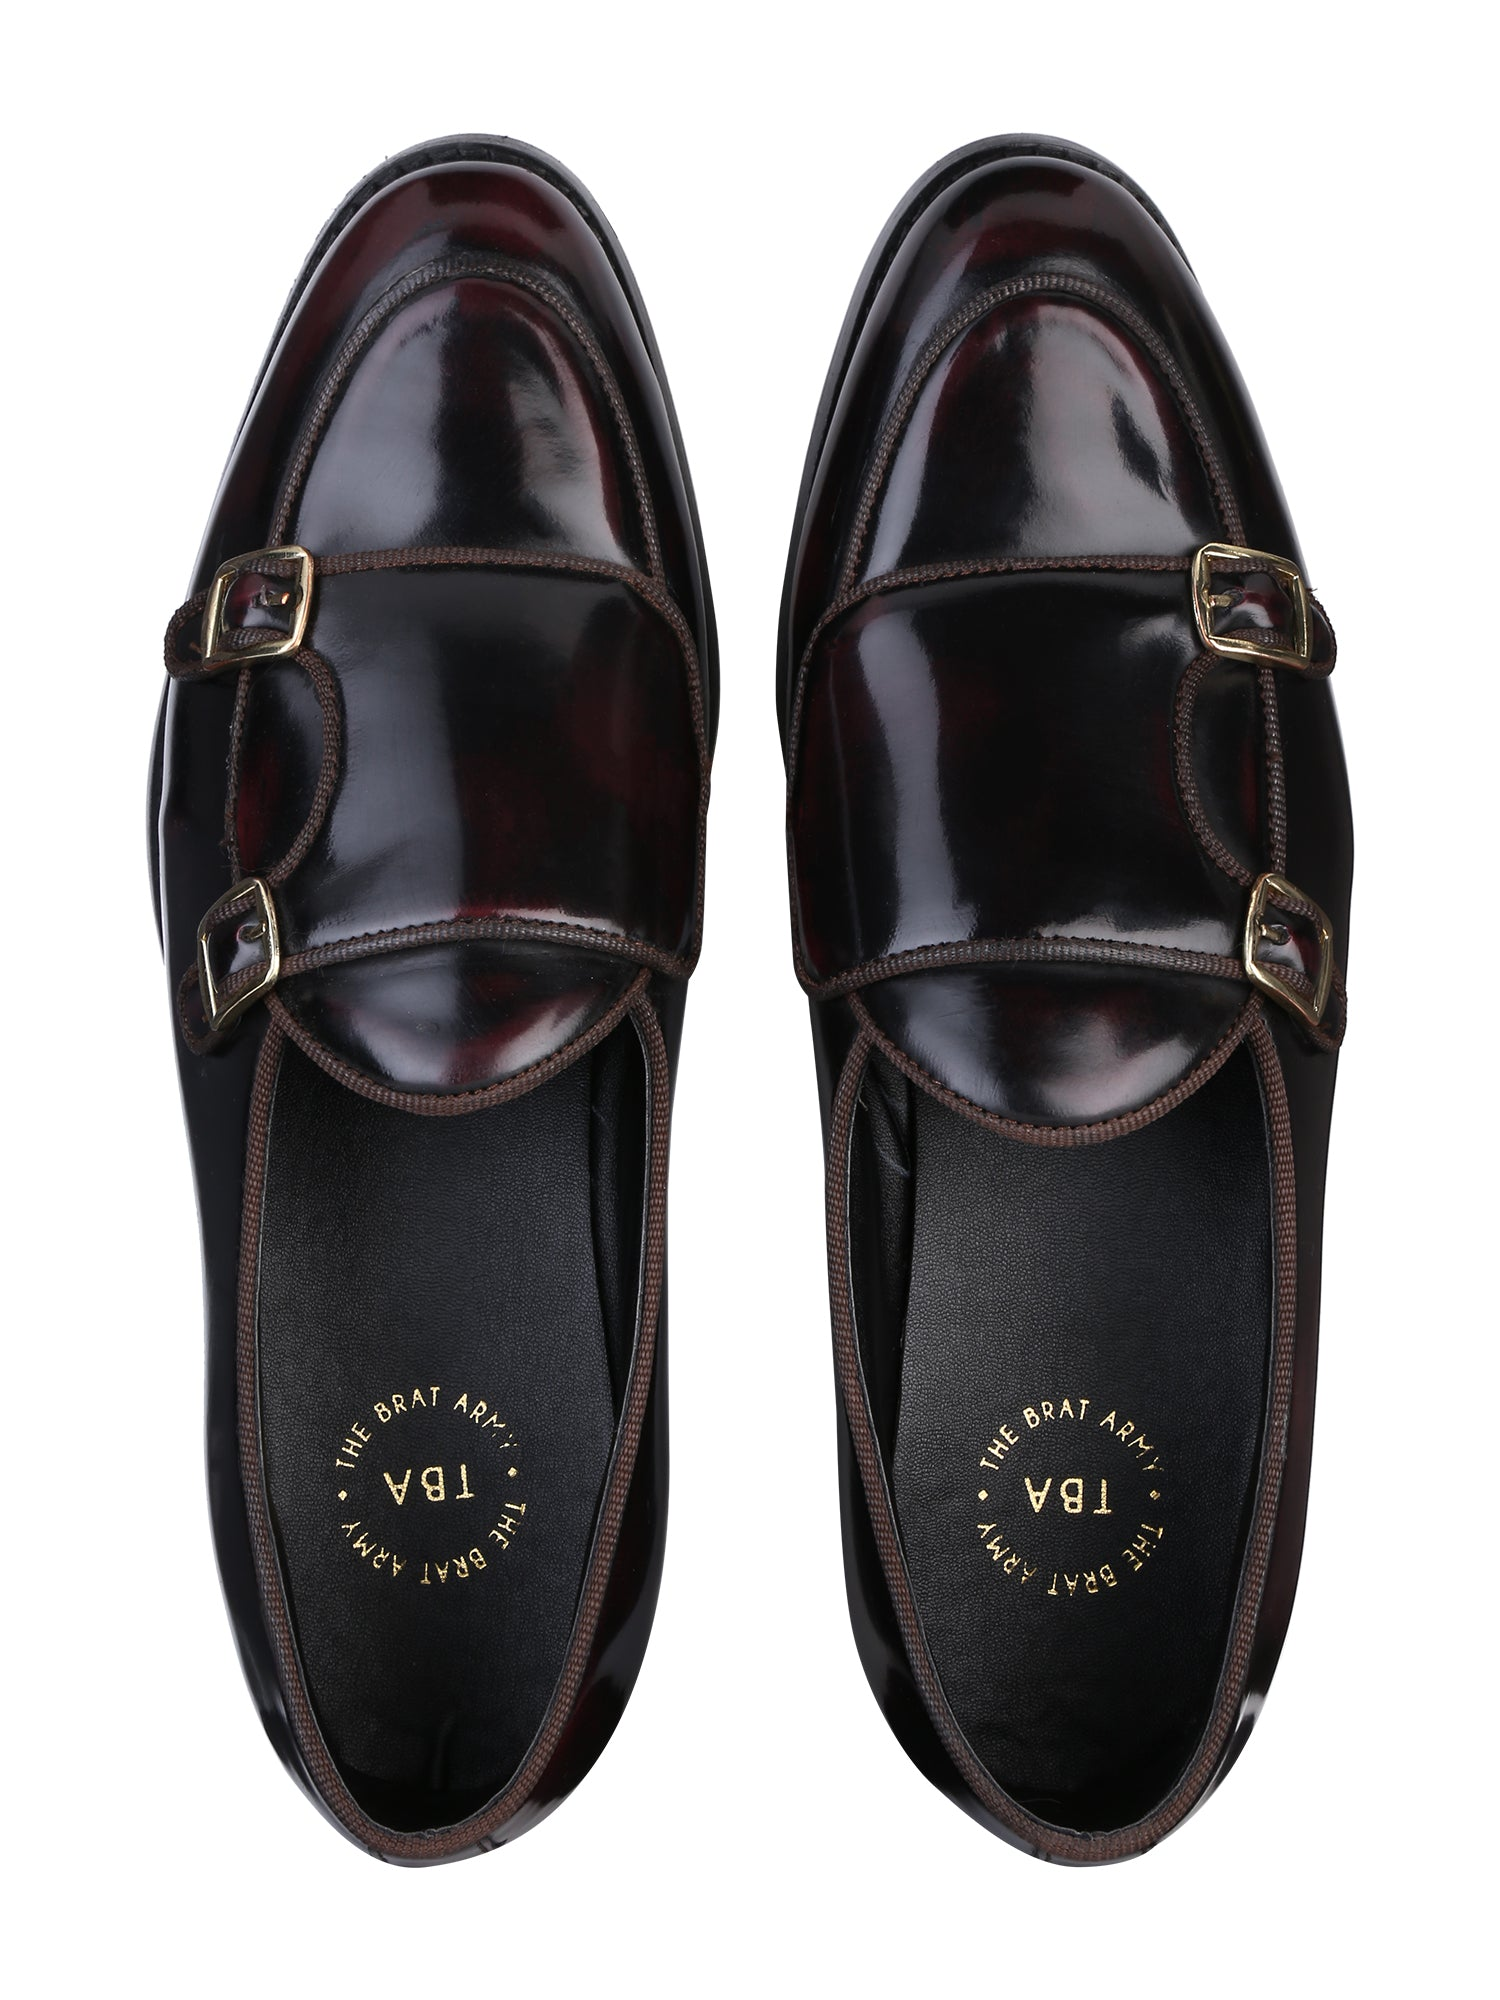 BELLO PATENT CHERRY/BLACK DOUBLE MONK LOAFERS